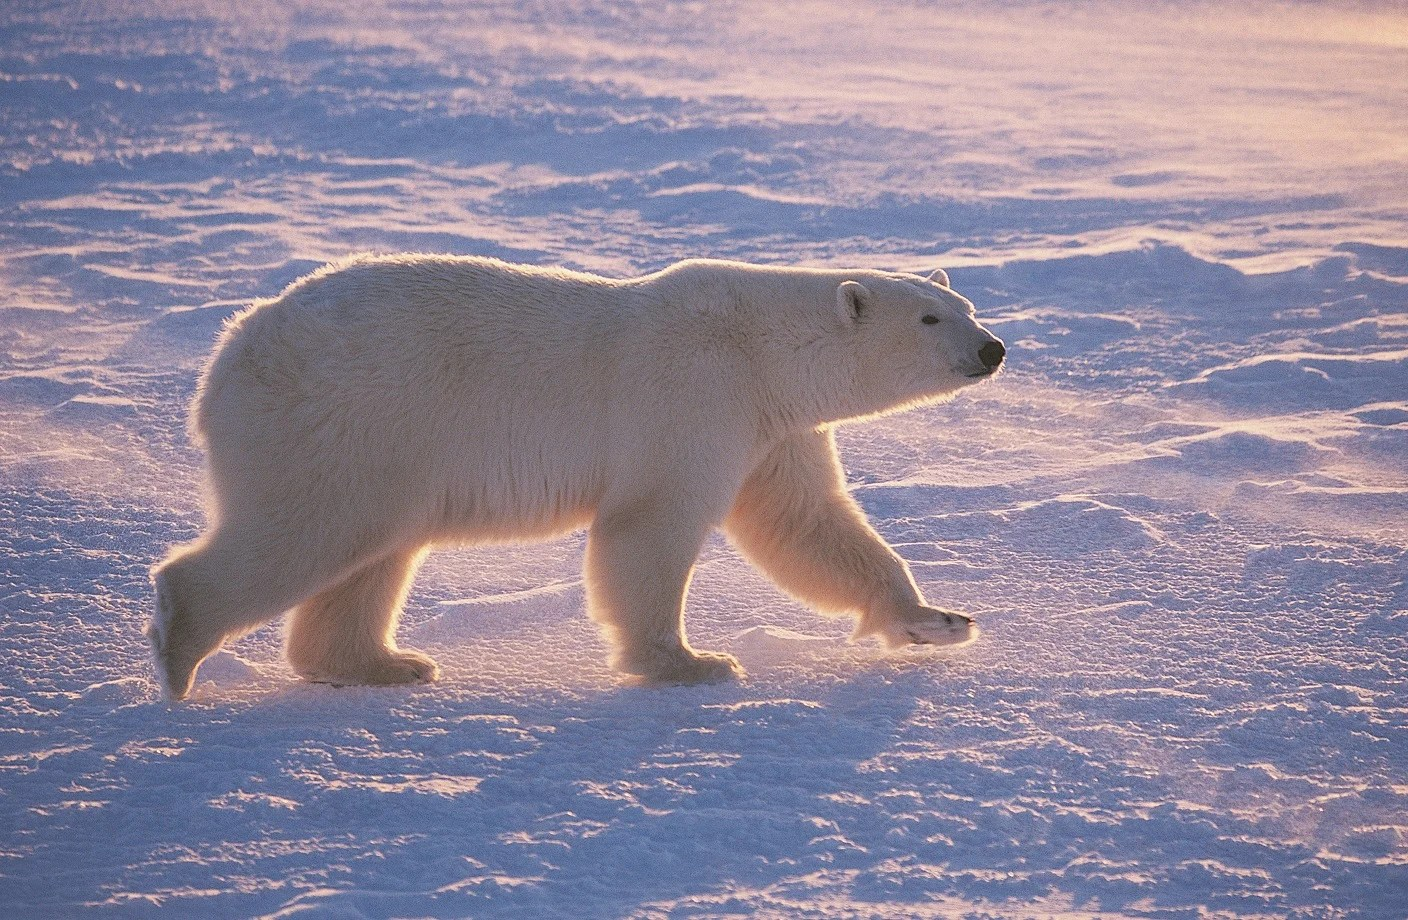 Climate Change Fires Up Polar Bear Treadmill Scientific American